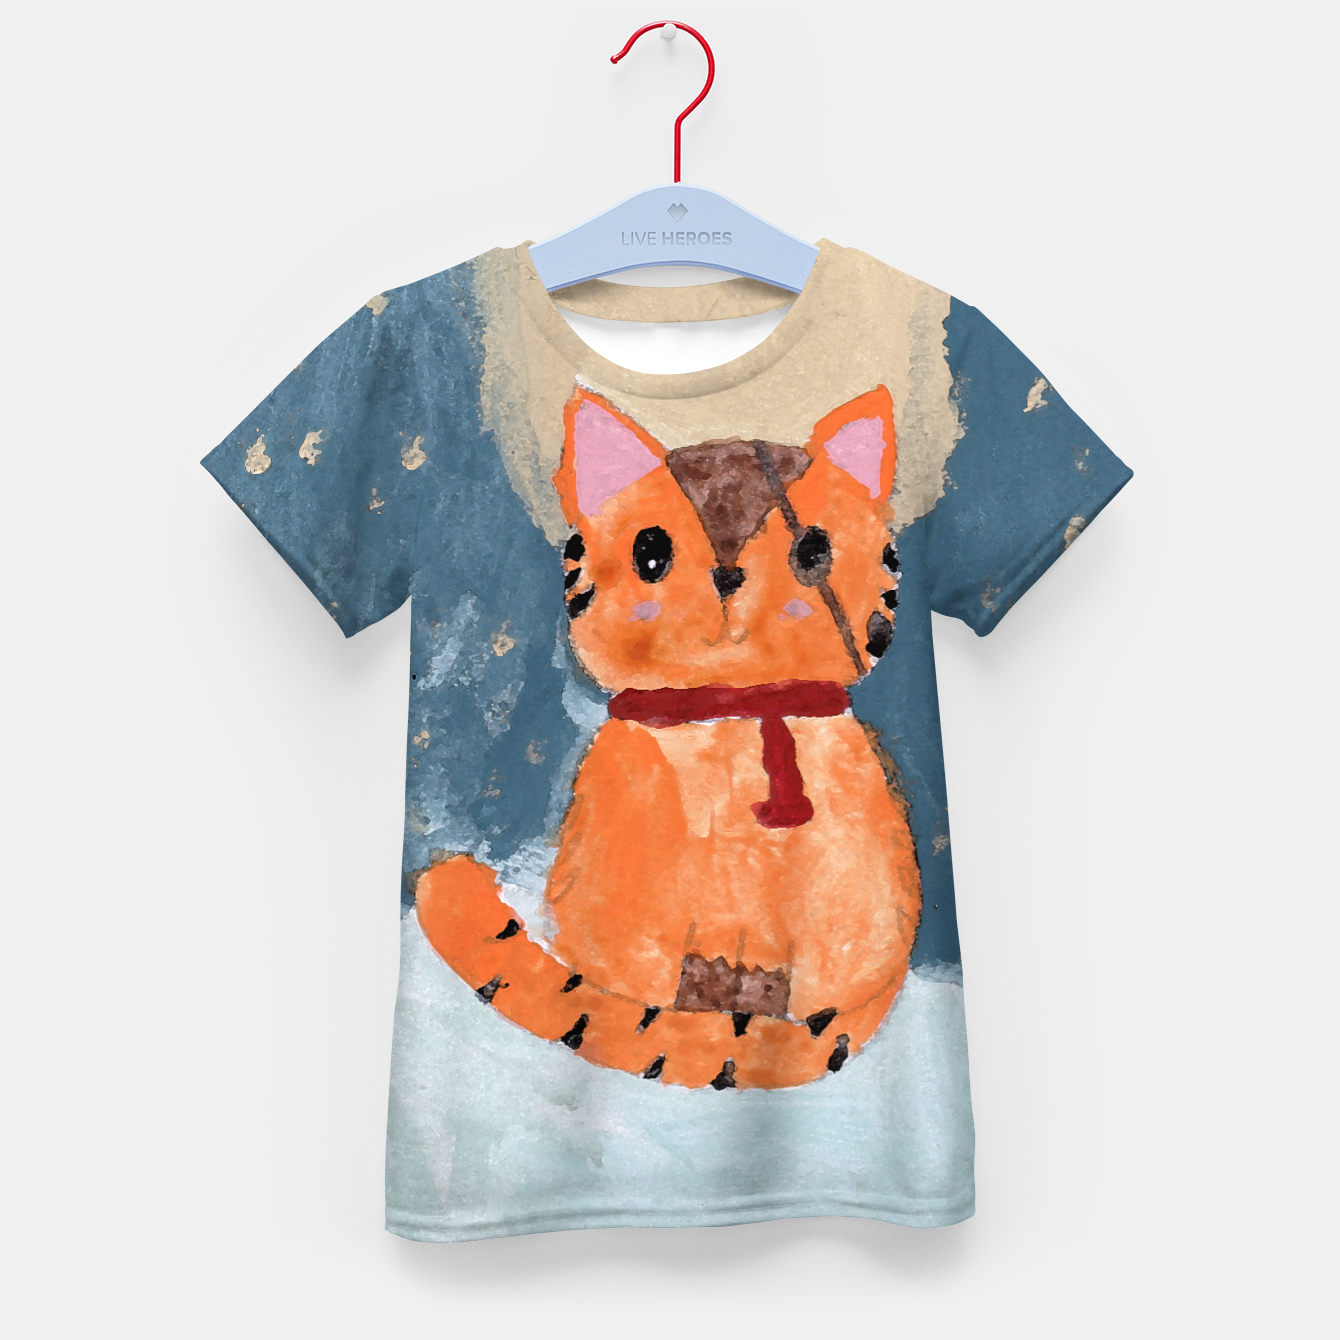 Image of Natali's tiger kitty with pirate eye bandage, a promise to my daughter Kid's t-shirt - Live Heroes